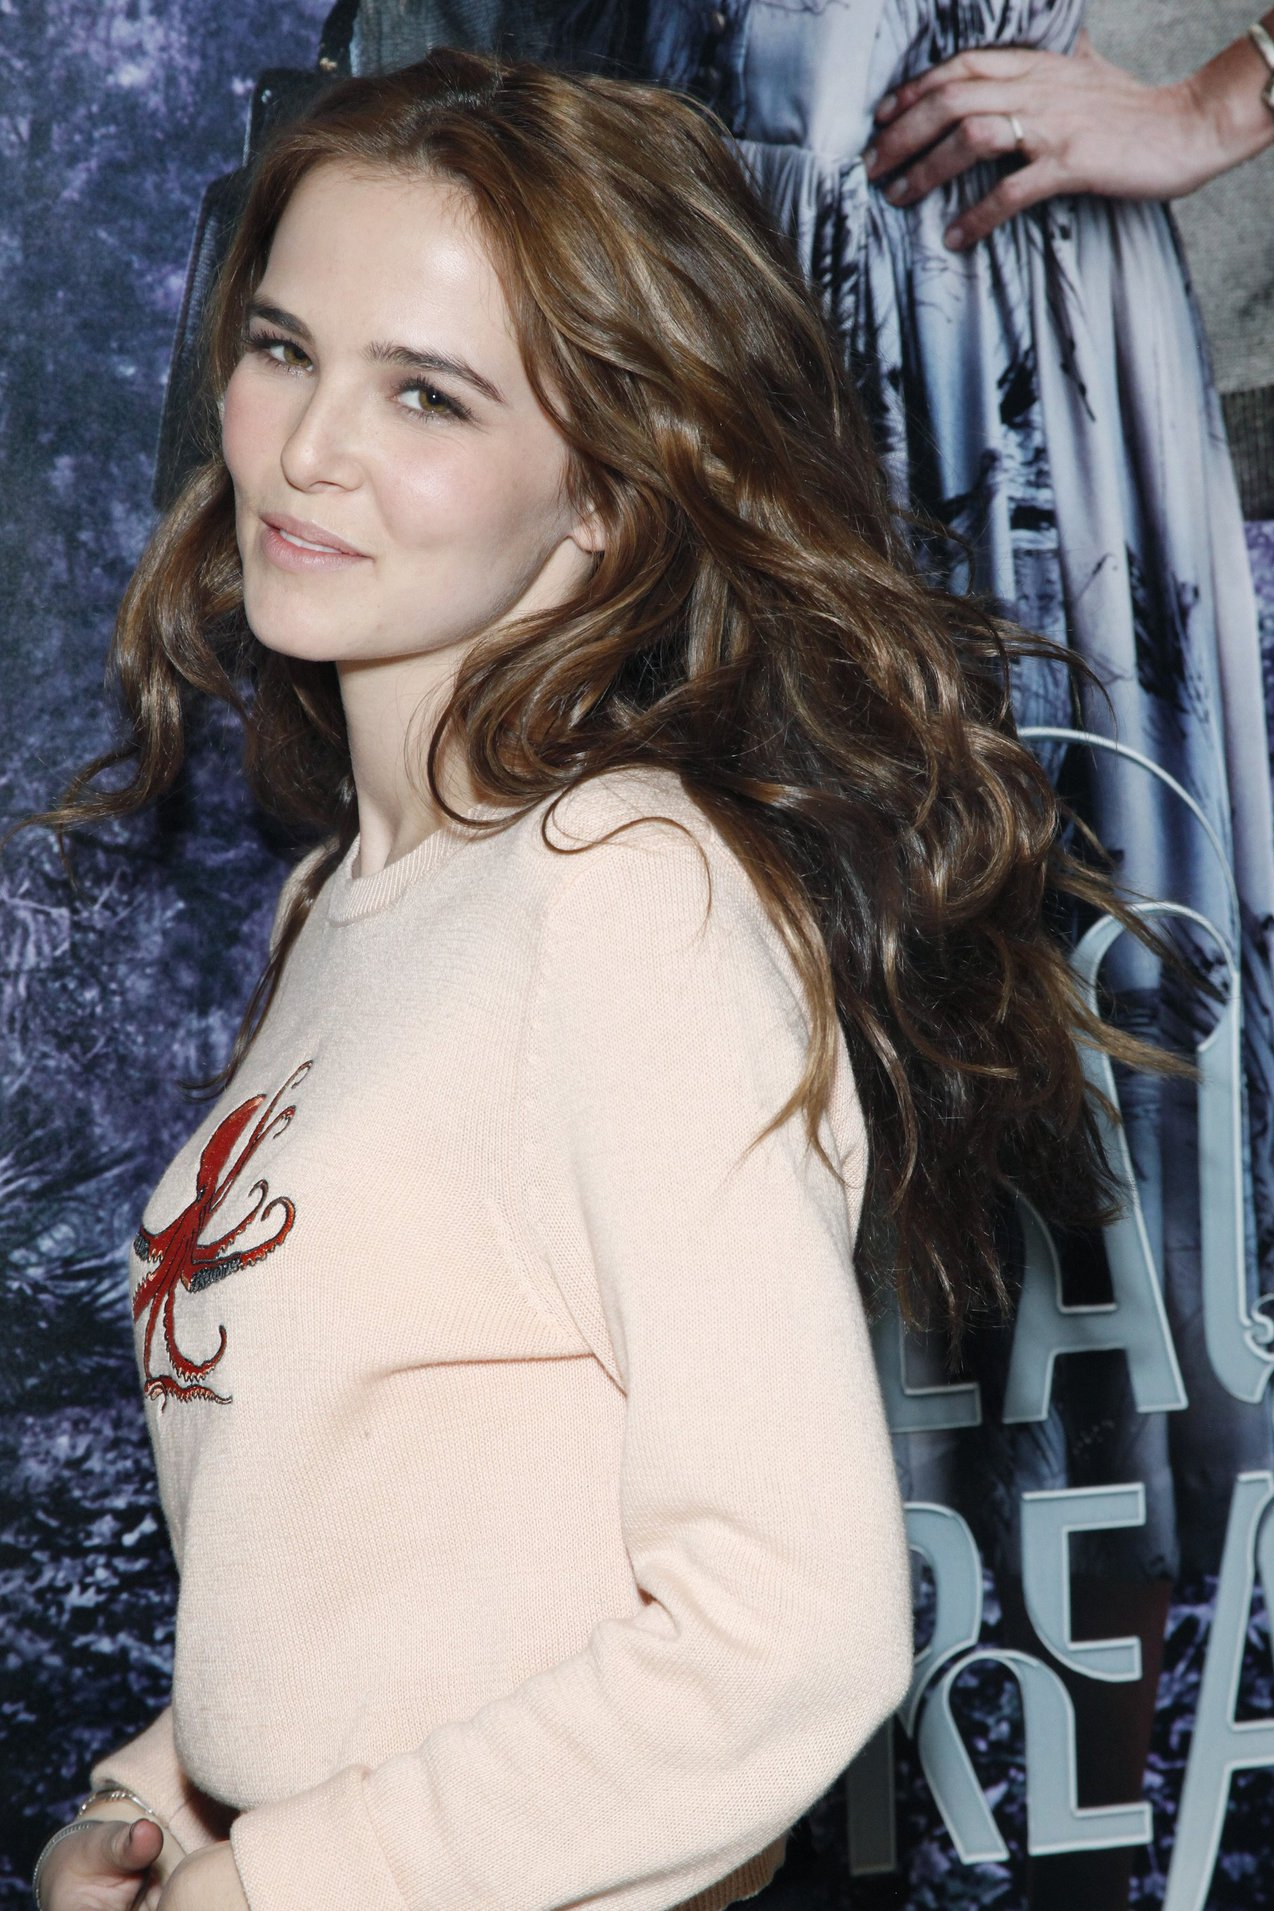 Zoey Deutch Meet-and-greet at Macy's in Cherry Hill, New Jersey (January 22, 2013)